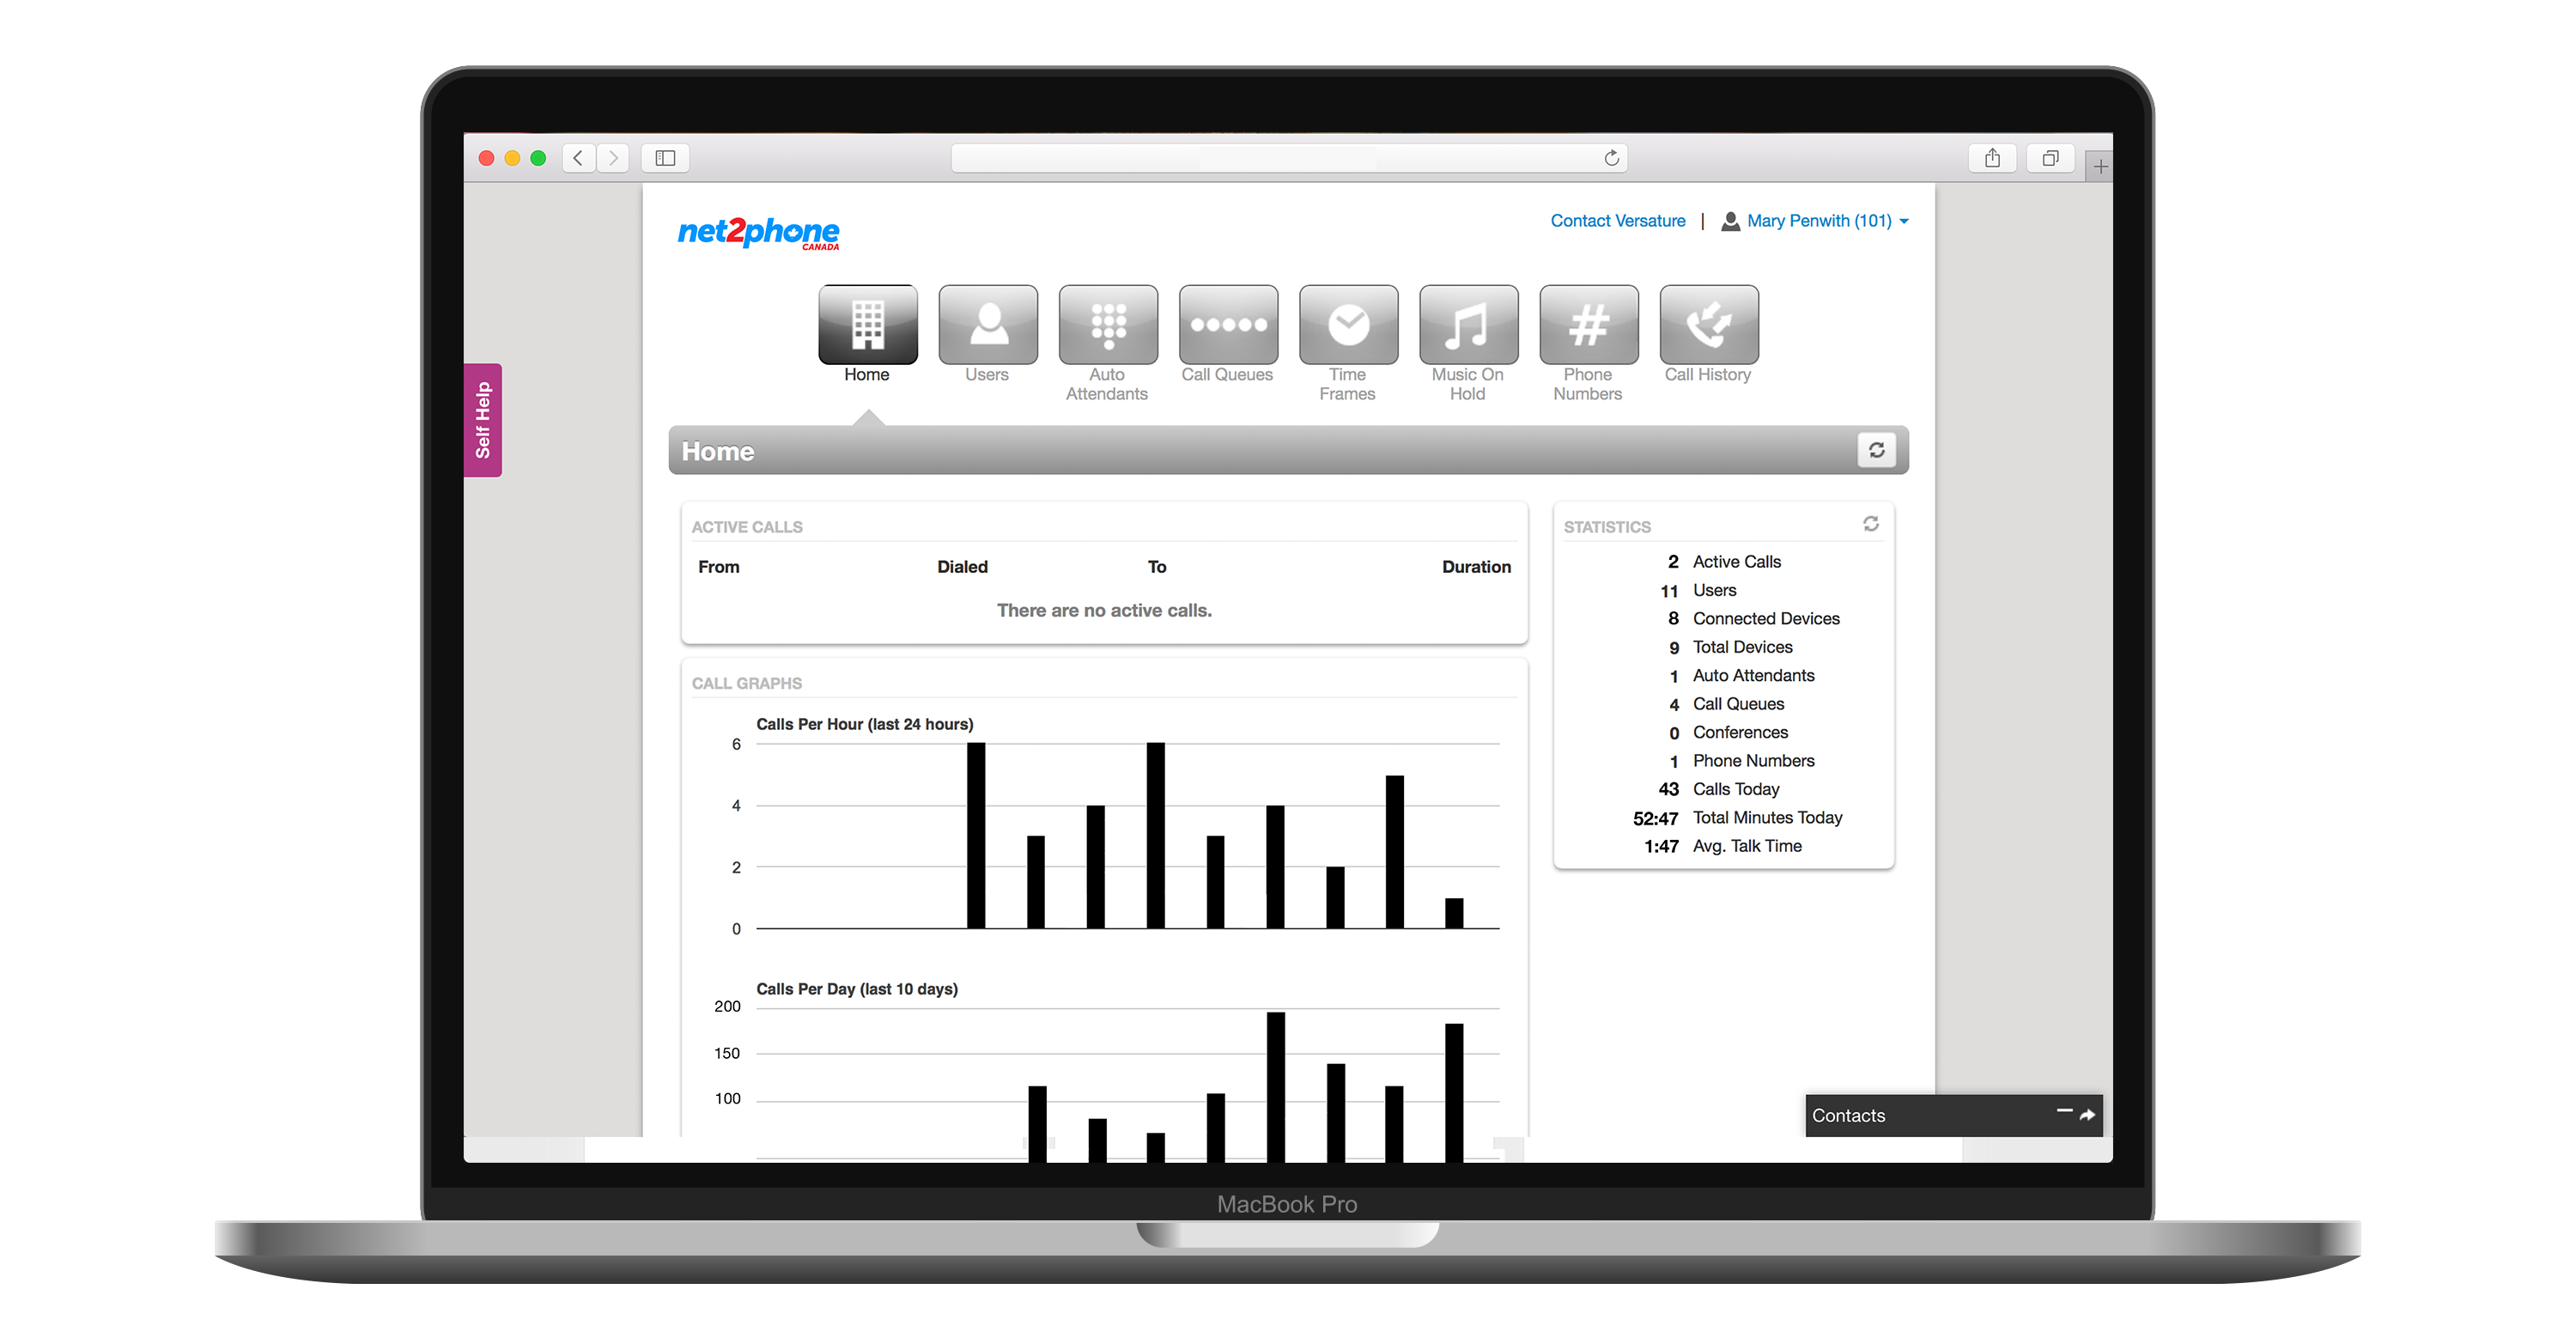 SONAR is net2phone Canada's customer self-service portal. Here, users can manage a variety of call and system preferences as well as review messages, call history, contacts, and more.